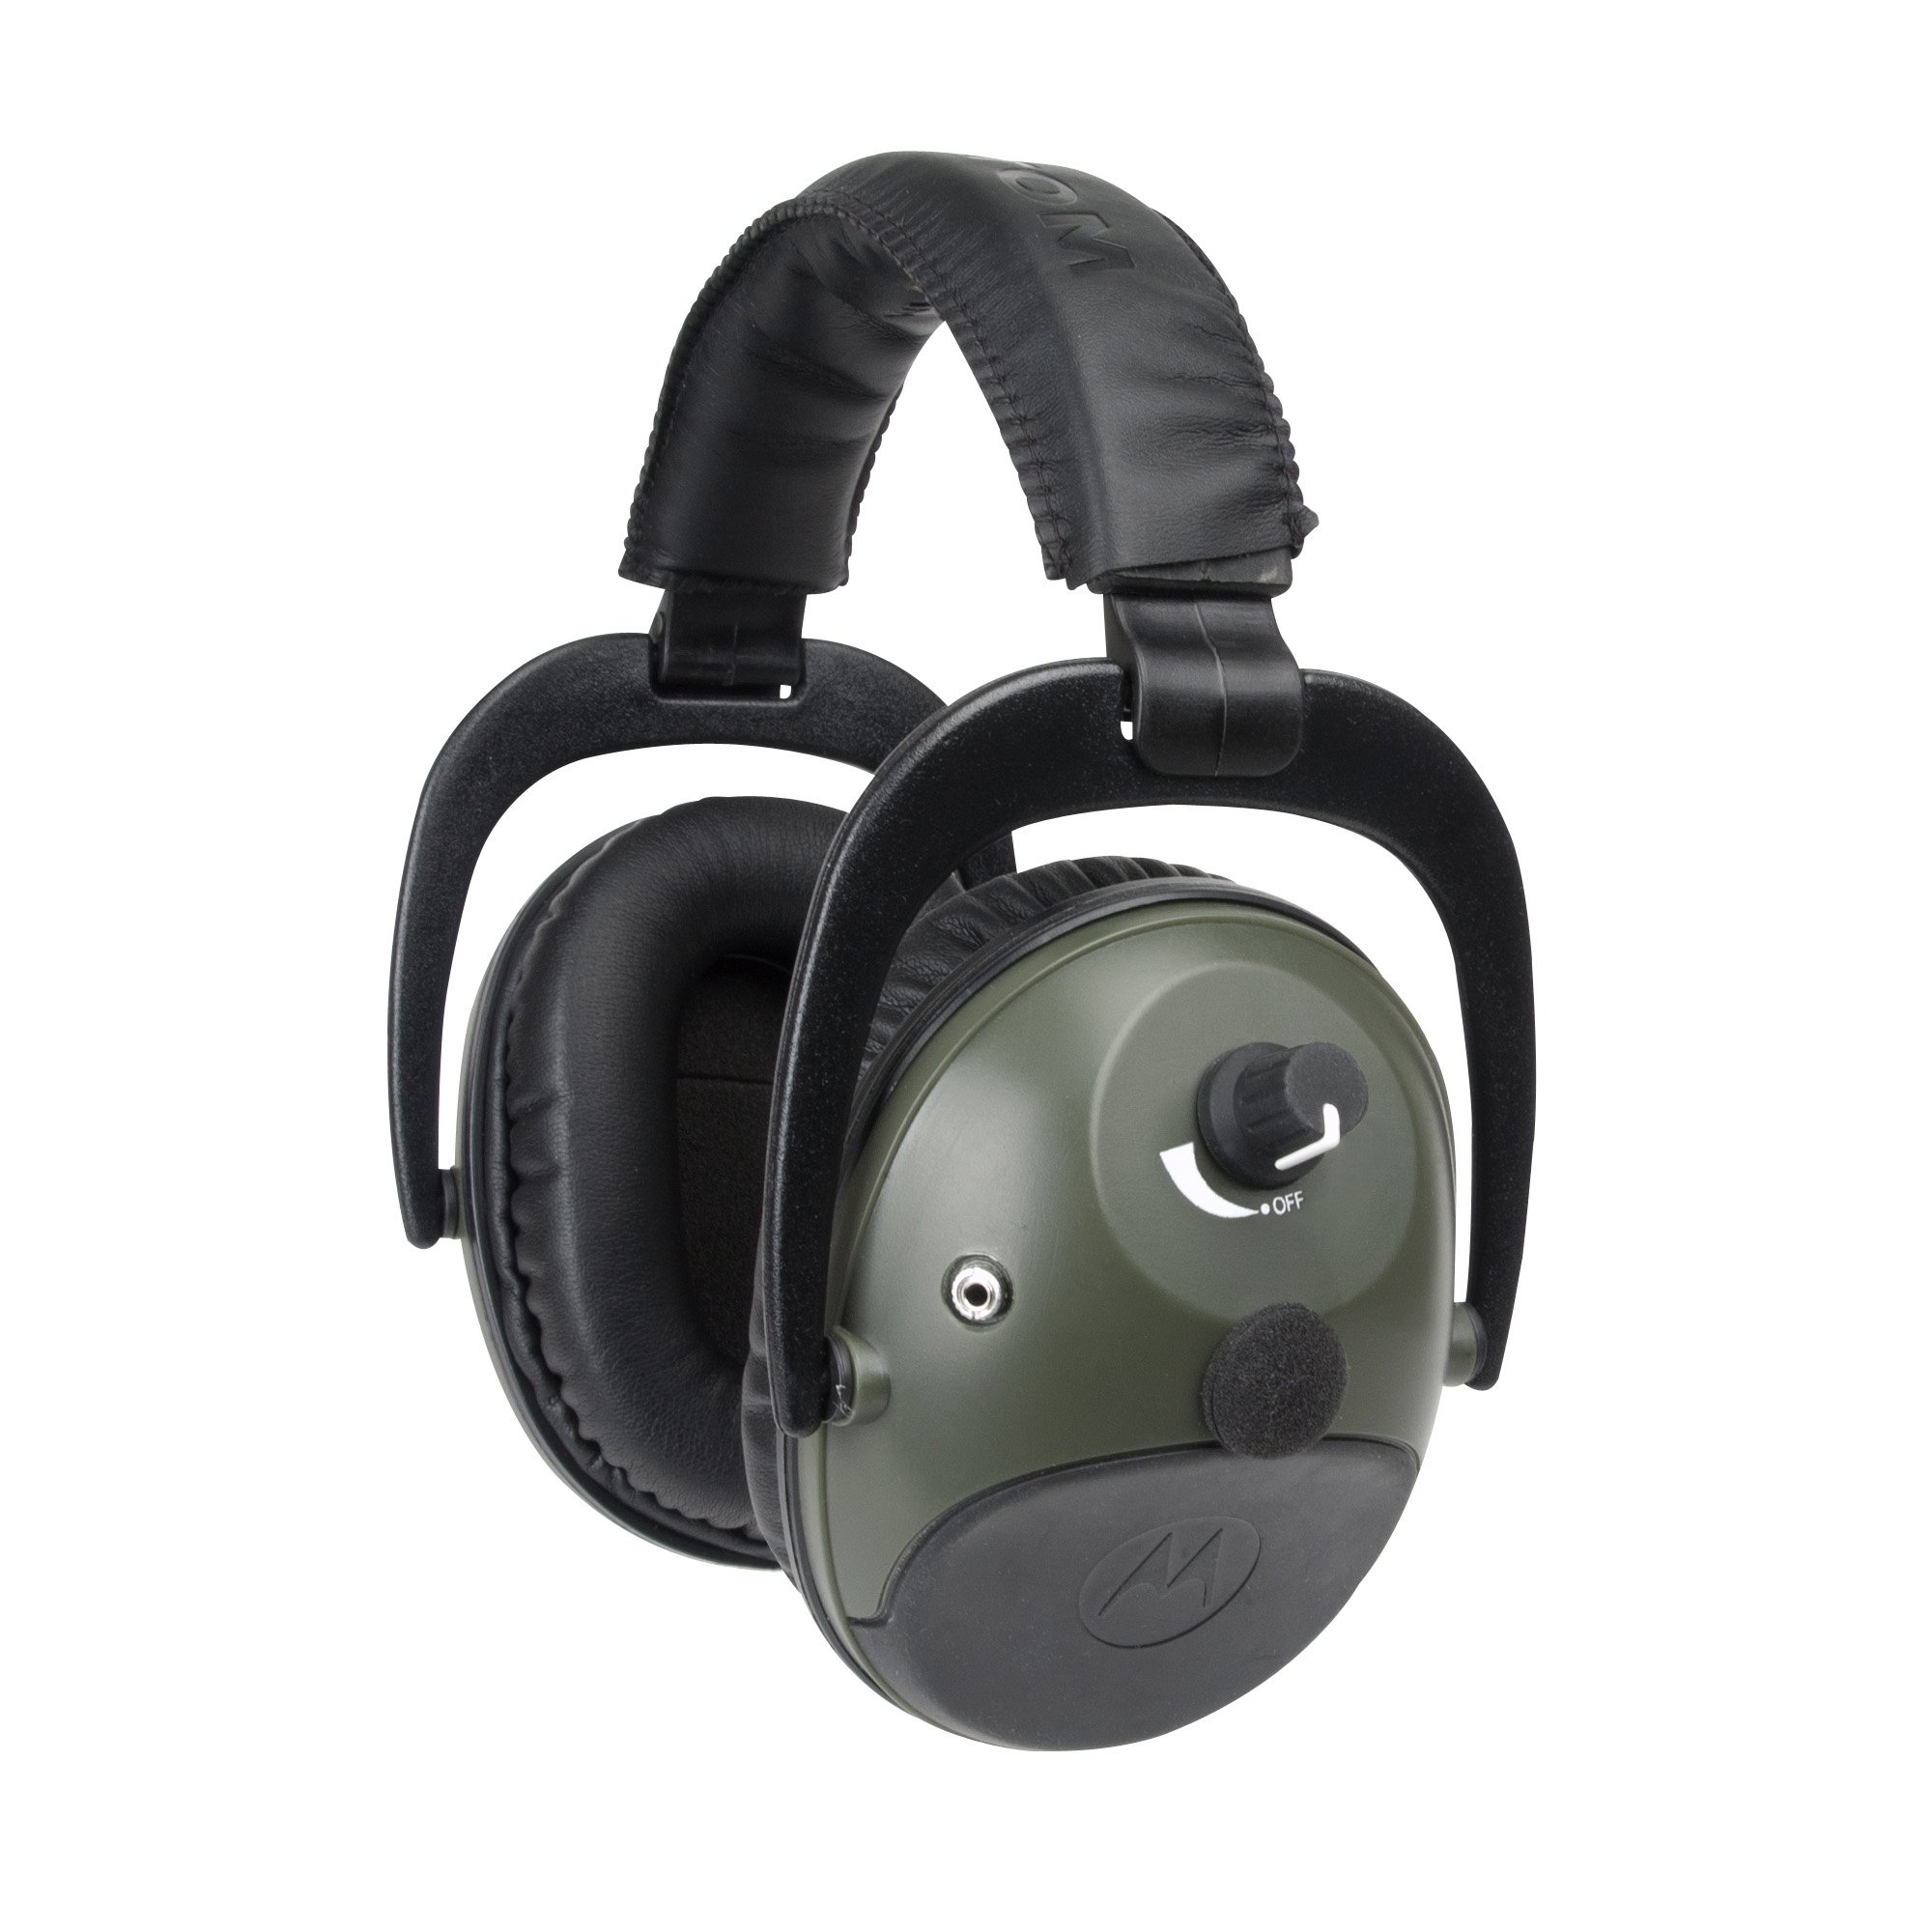 Motorola MHP81 Talkabout Electronic Earmuff with PTT Microphone Cable (Hunter green)